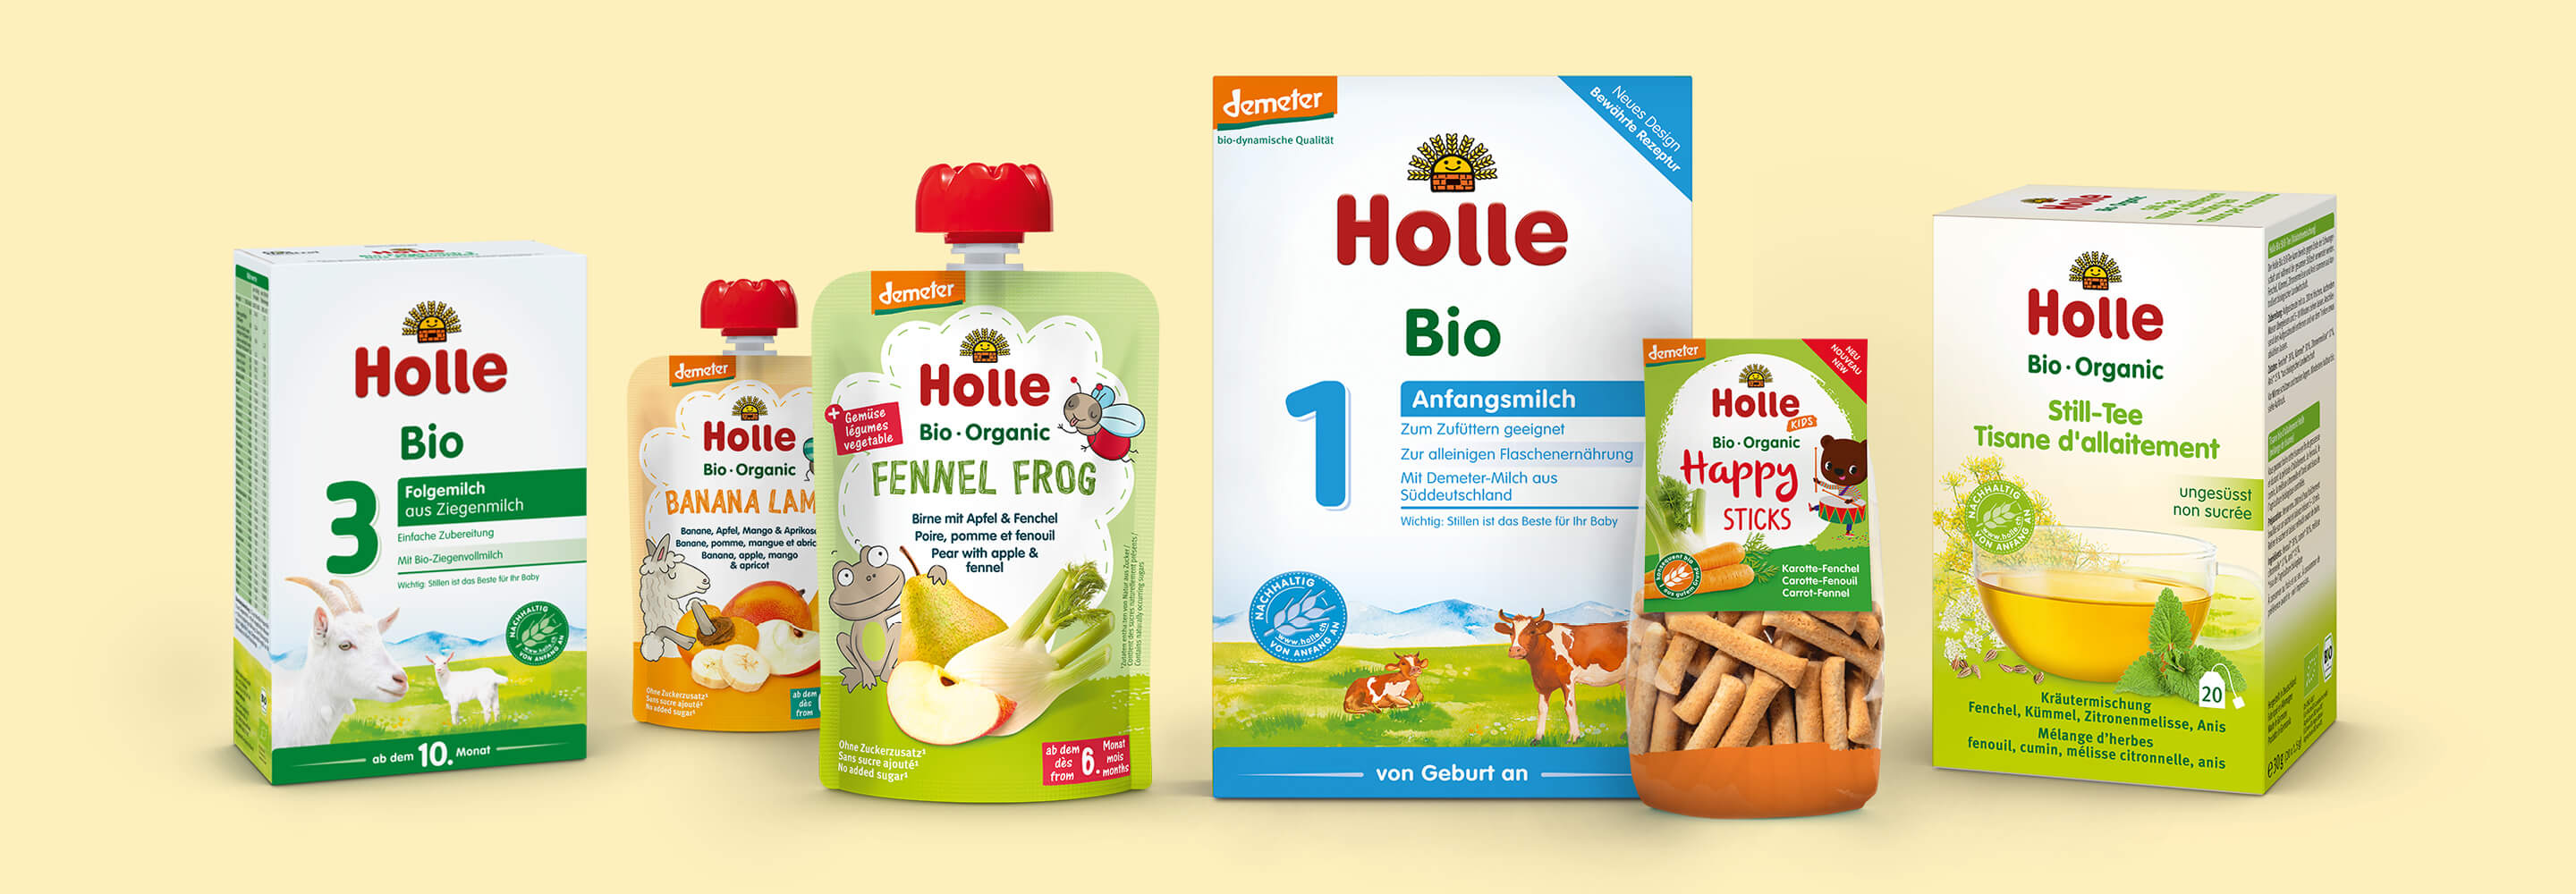 EBEP_181101_Relaunch_Web_Holle_packaging_01